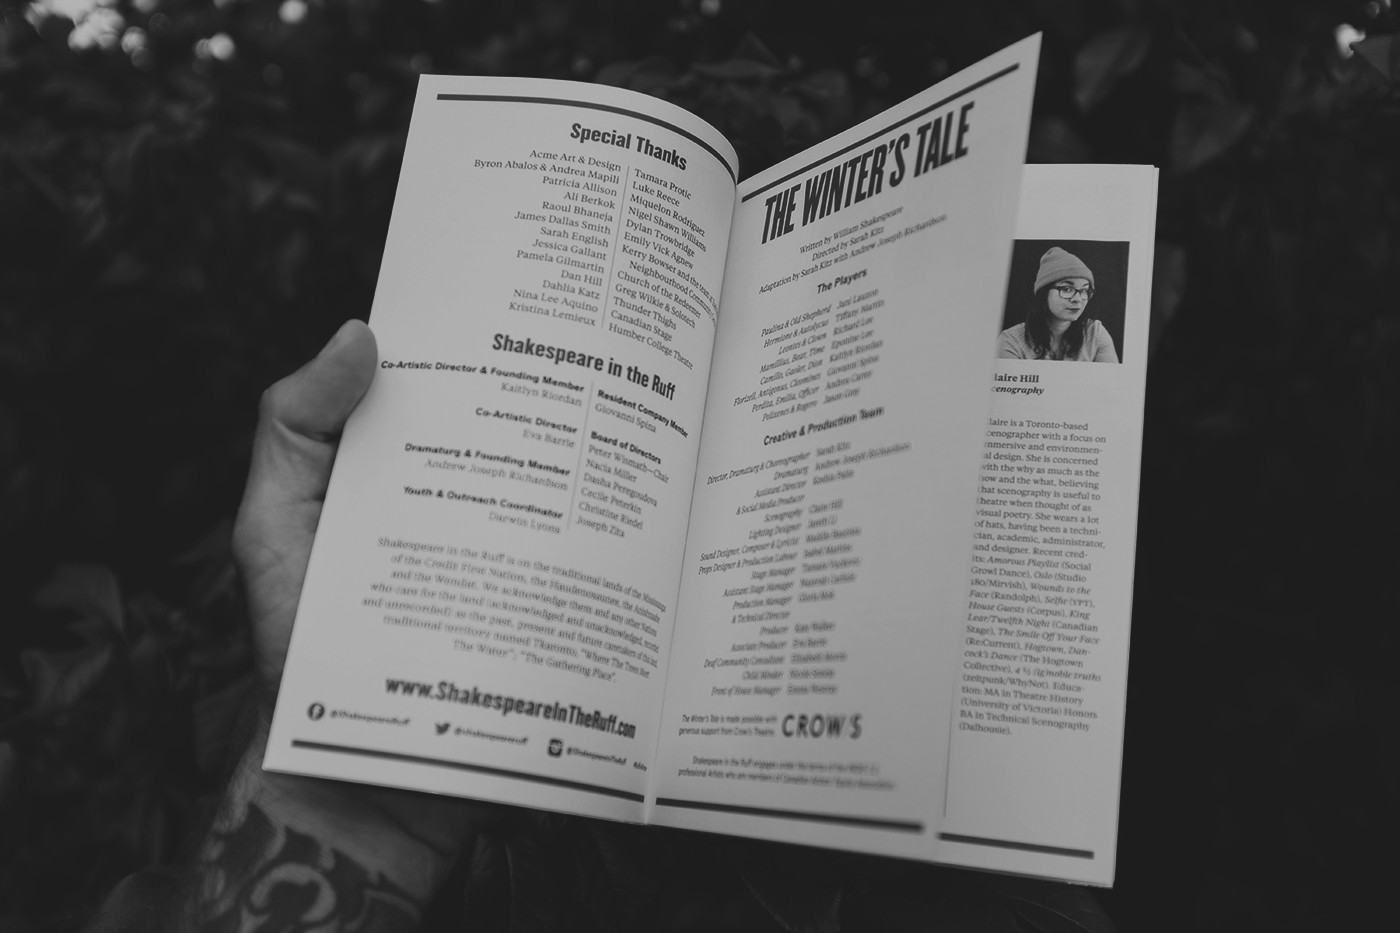 Black and white image of a hand holding the program booklet for The Winter's Tale